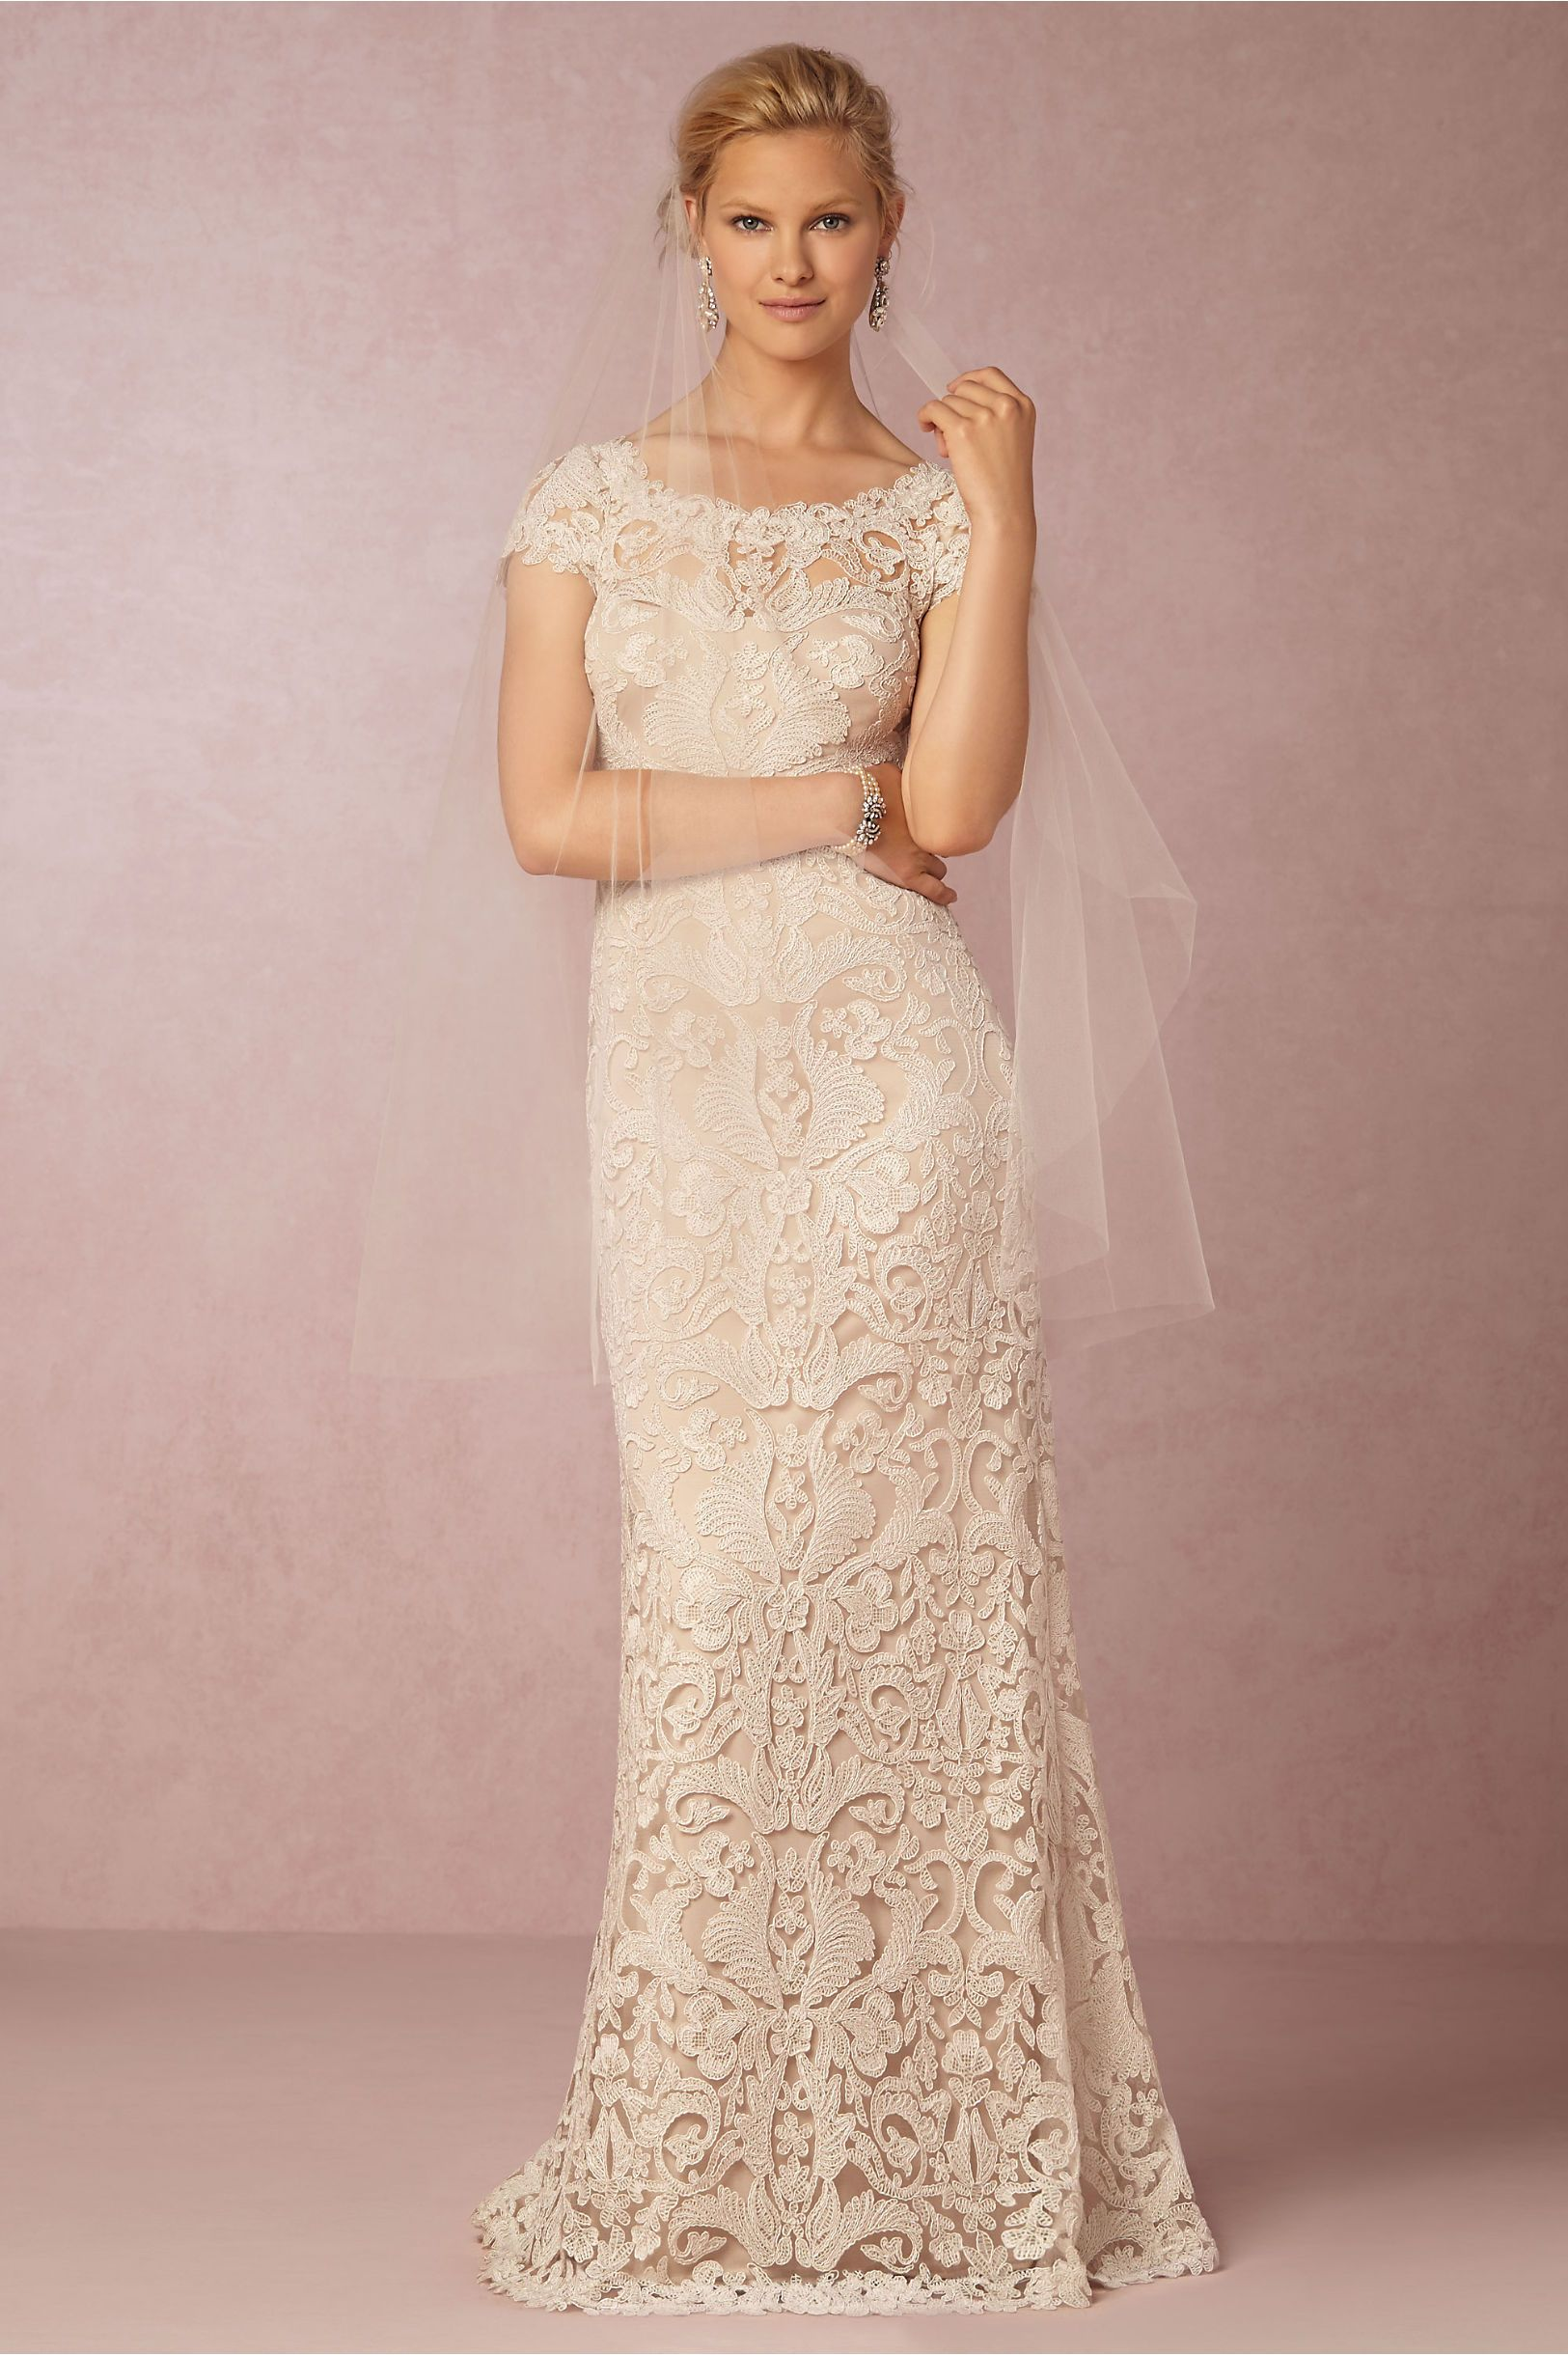 simple chic lace wedding dress | August Gown by Tadashi Shoji for ...